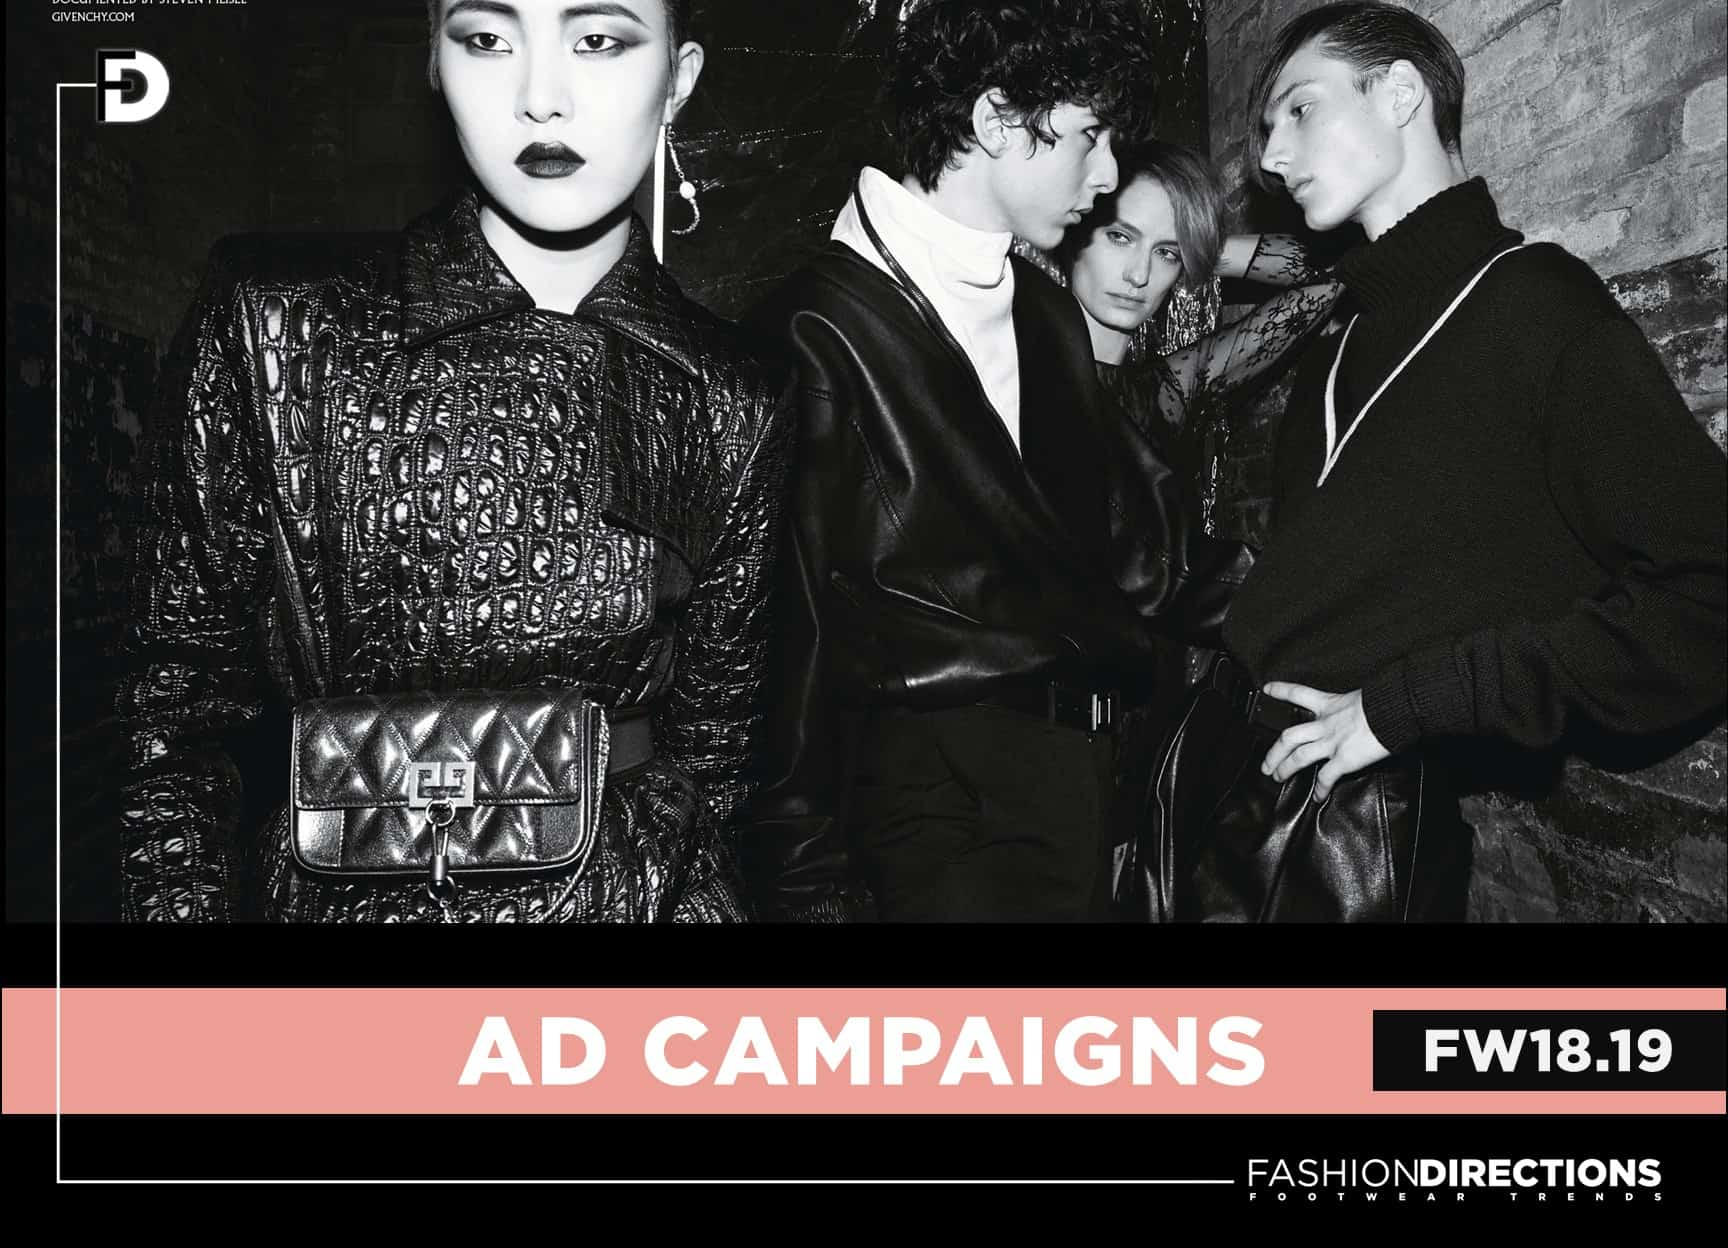 Ad Campaigns FW18/19 – Part 2